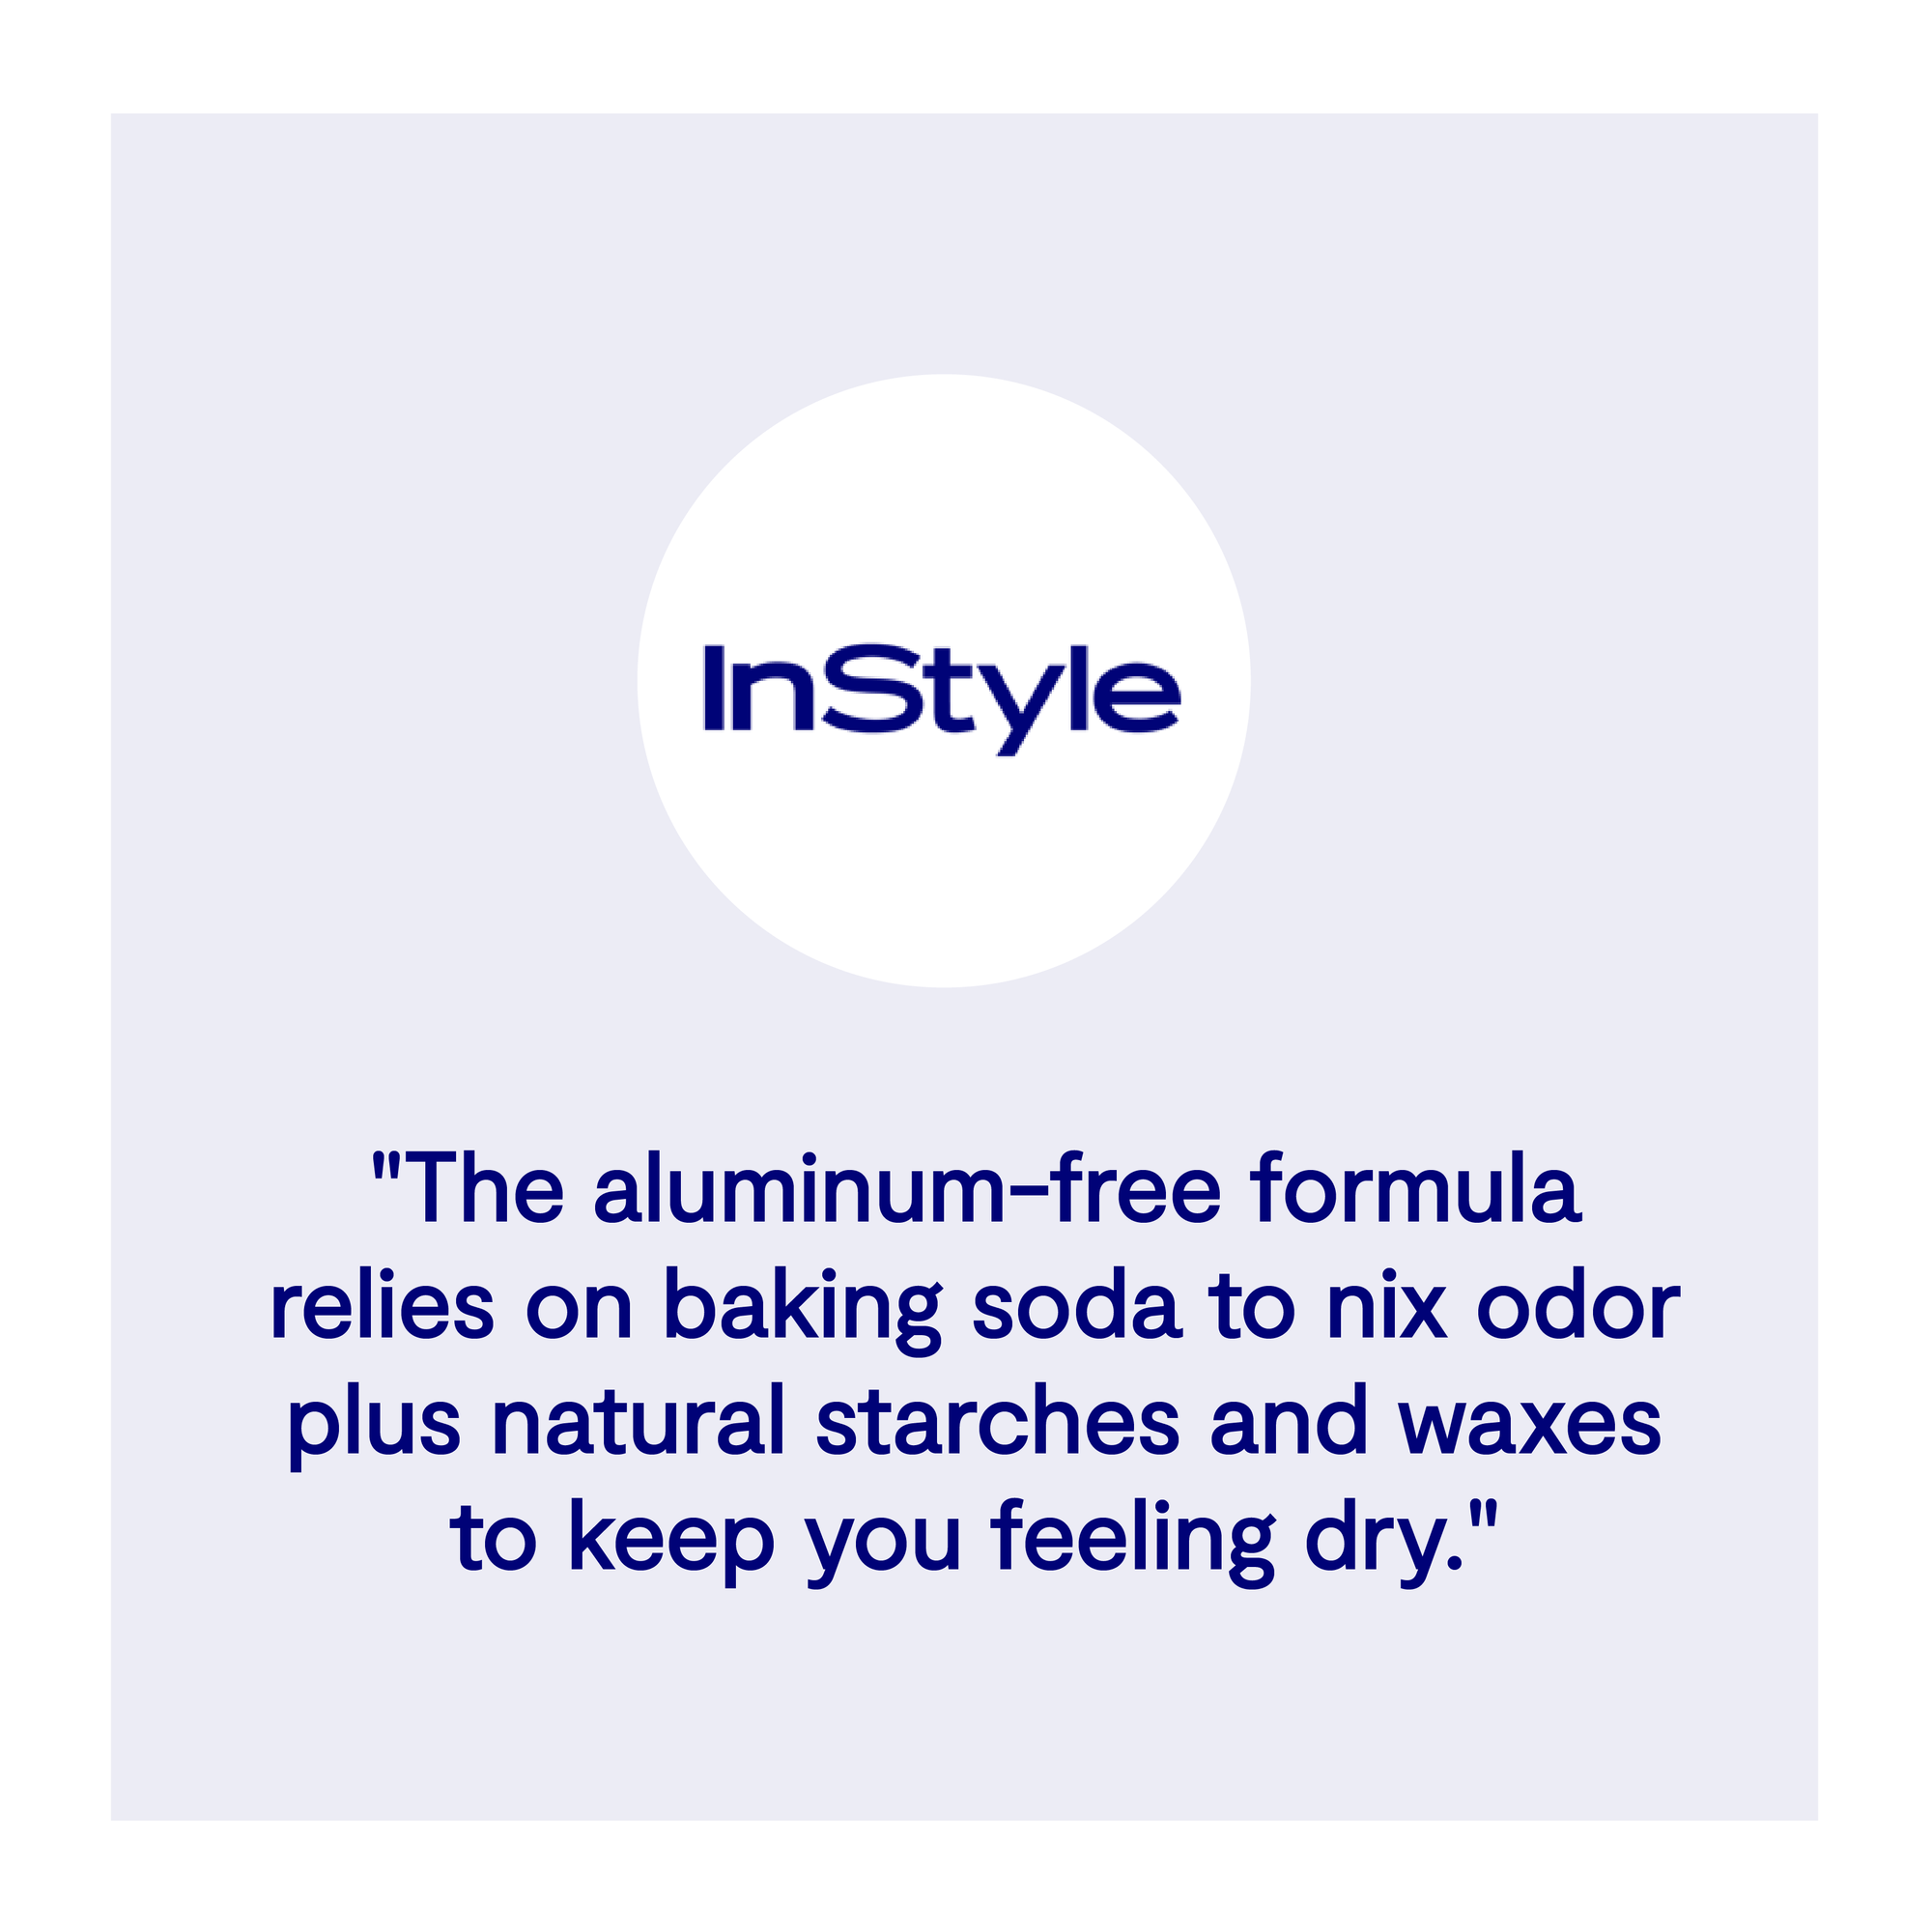 Instyle best aluminum free deodorant testimonial reviews